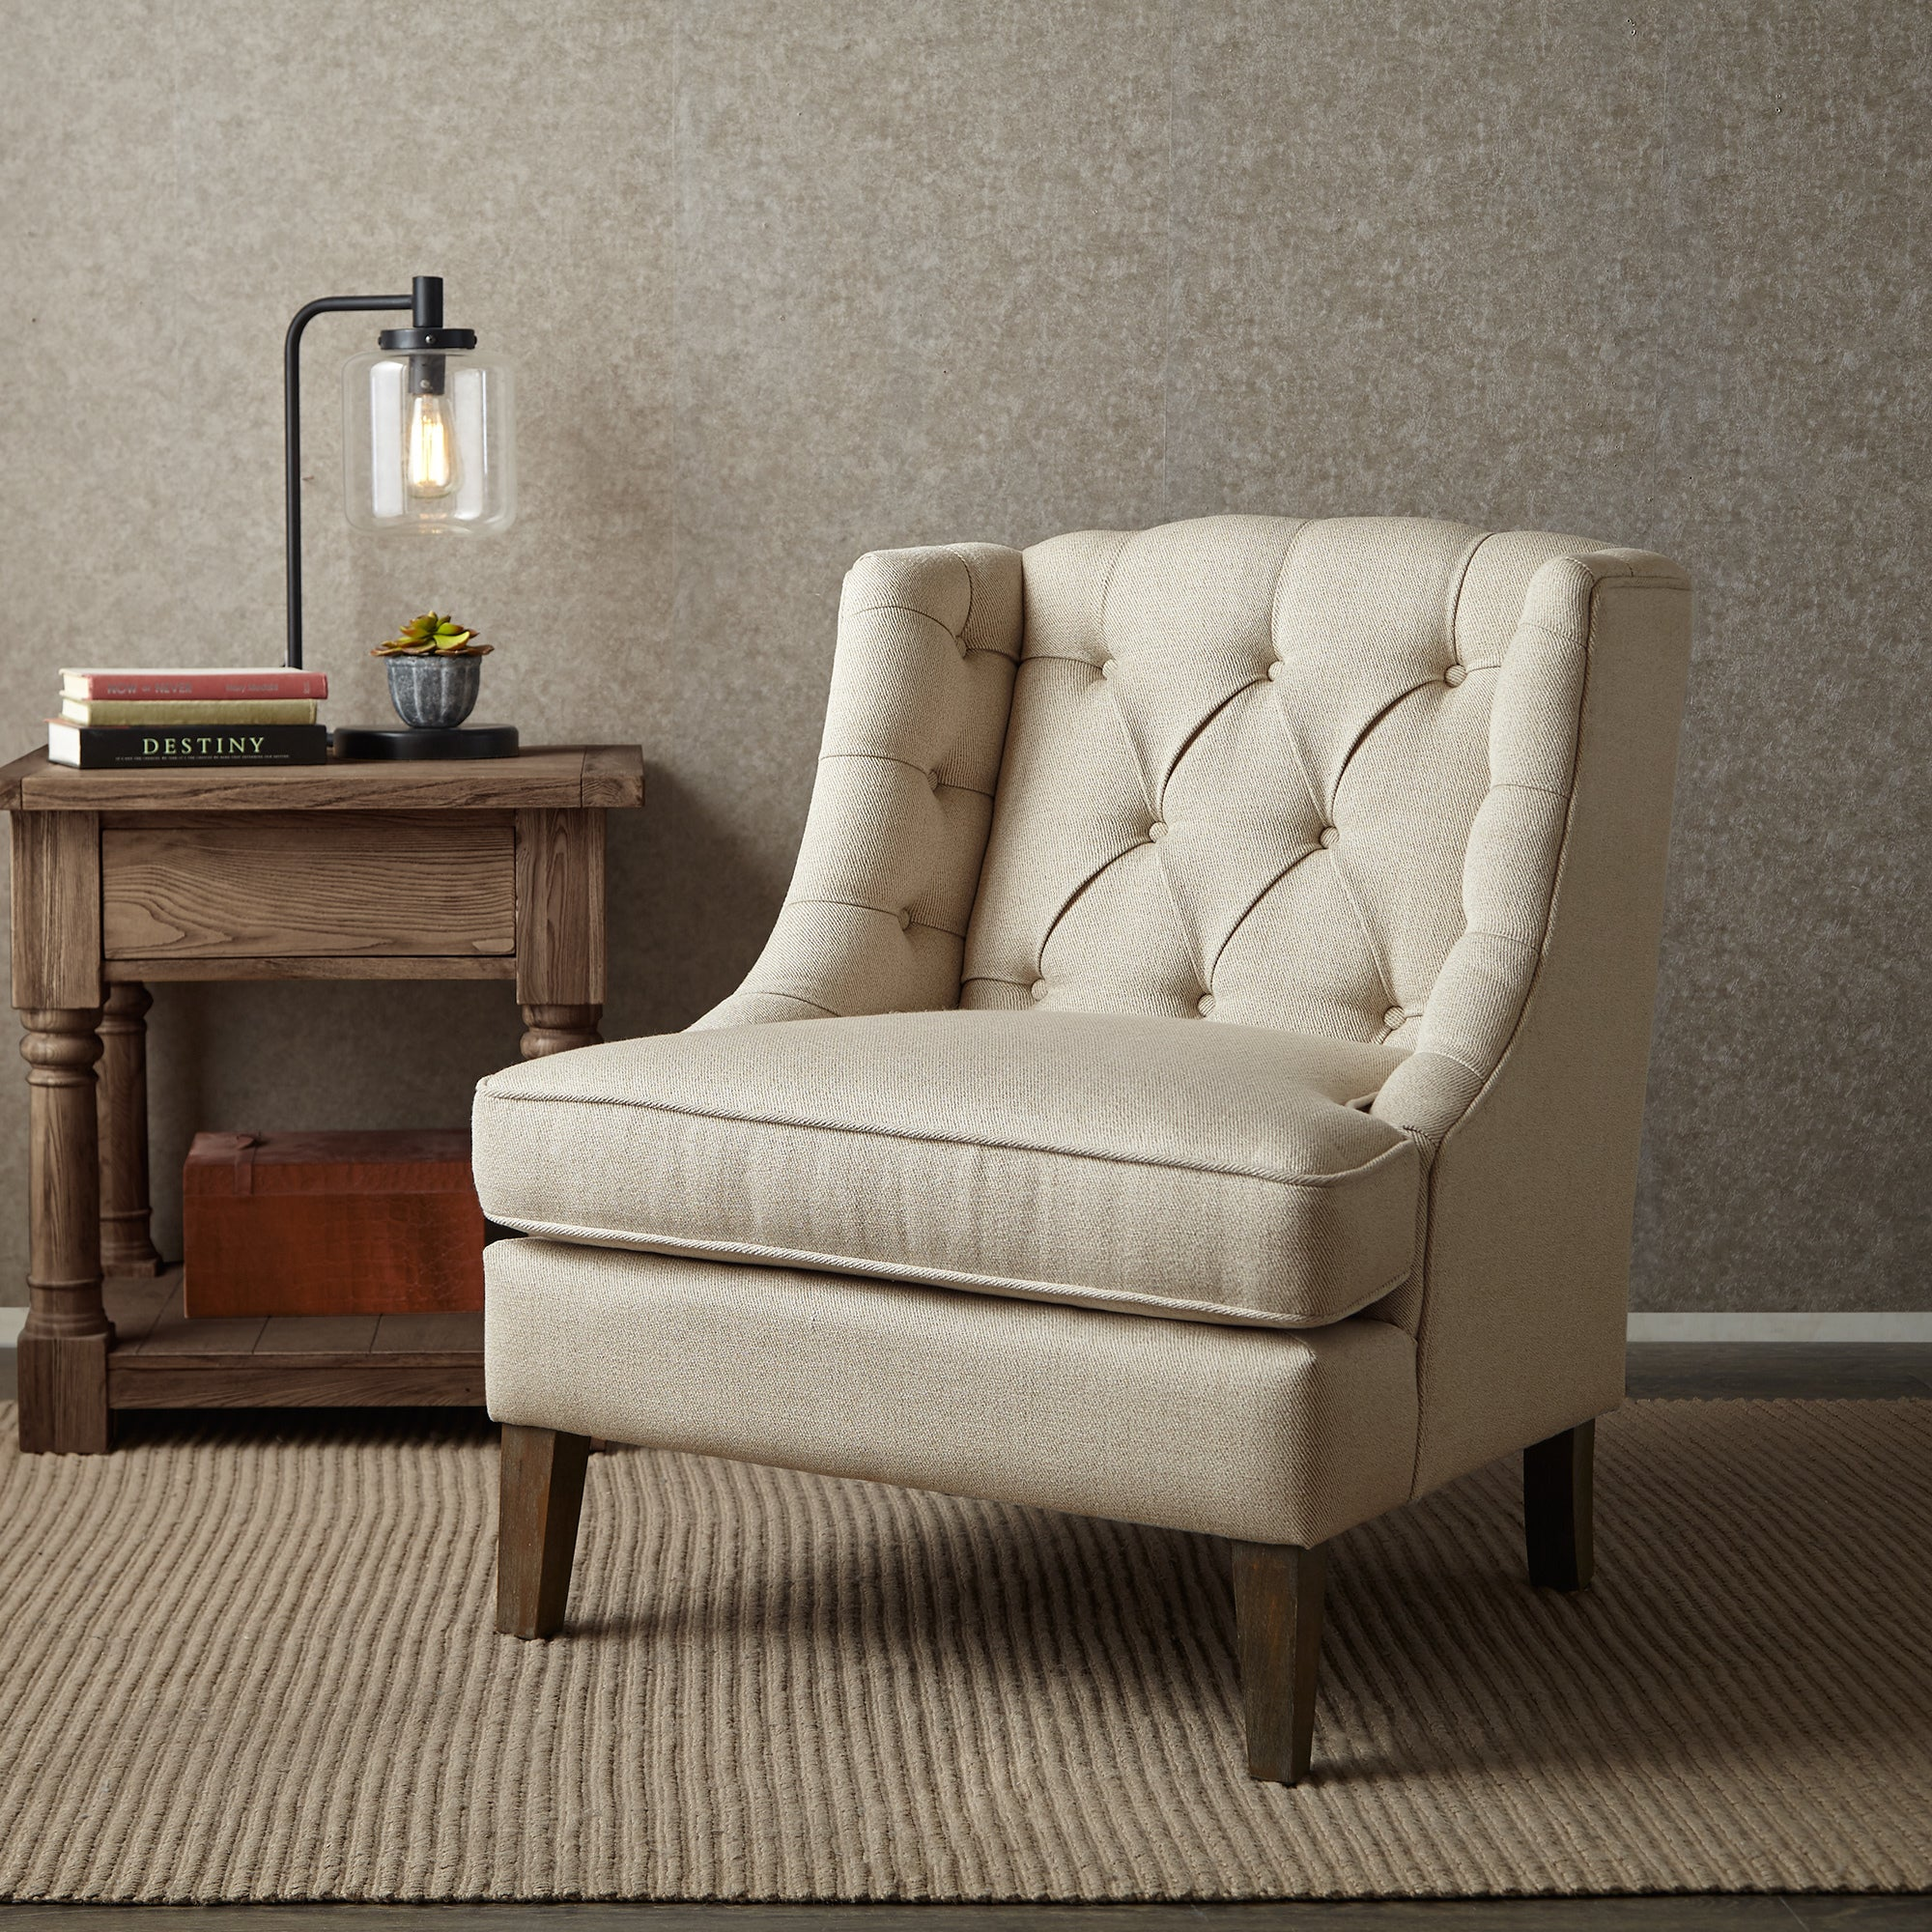 Shop madison park kelso button tufted accent chair free shipping today overstock com 11531199